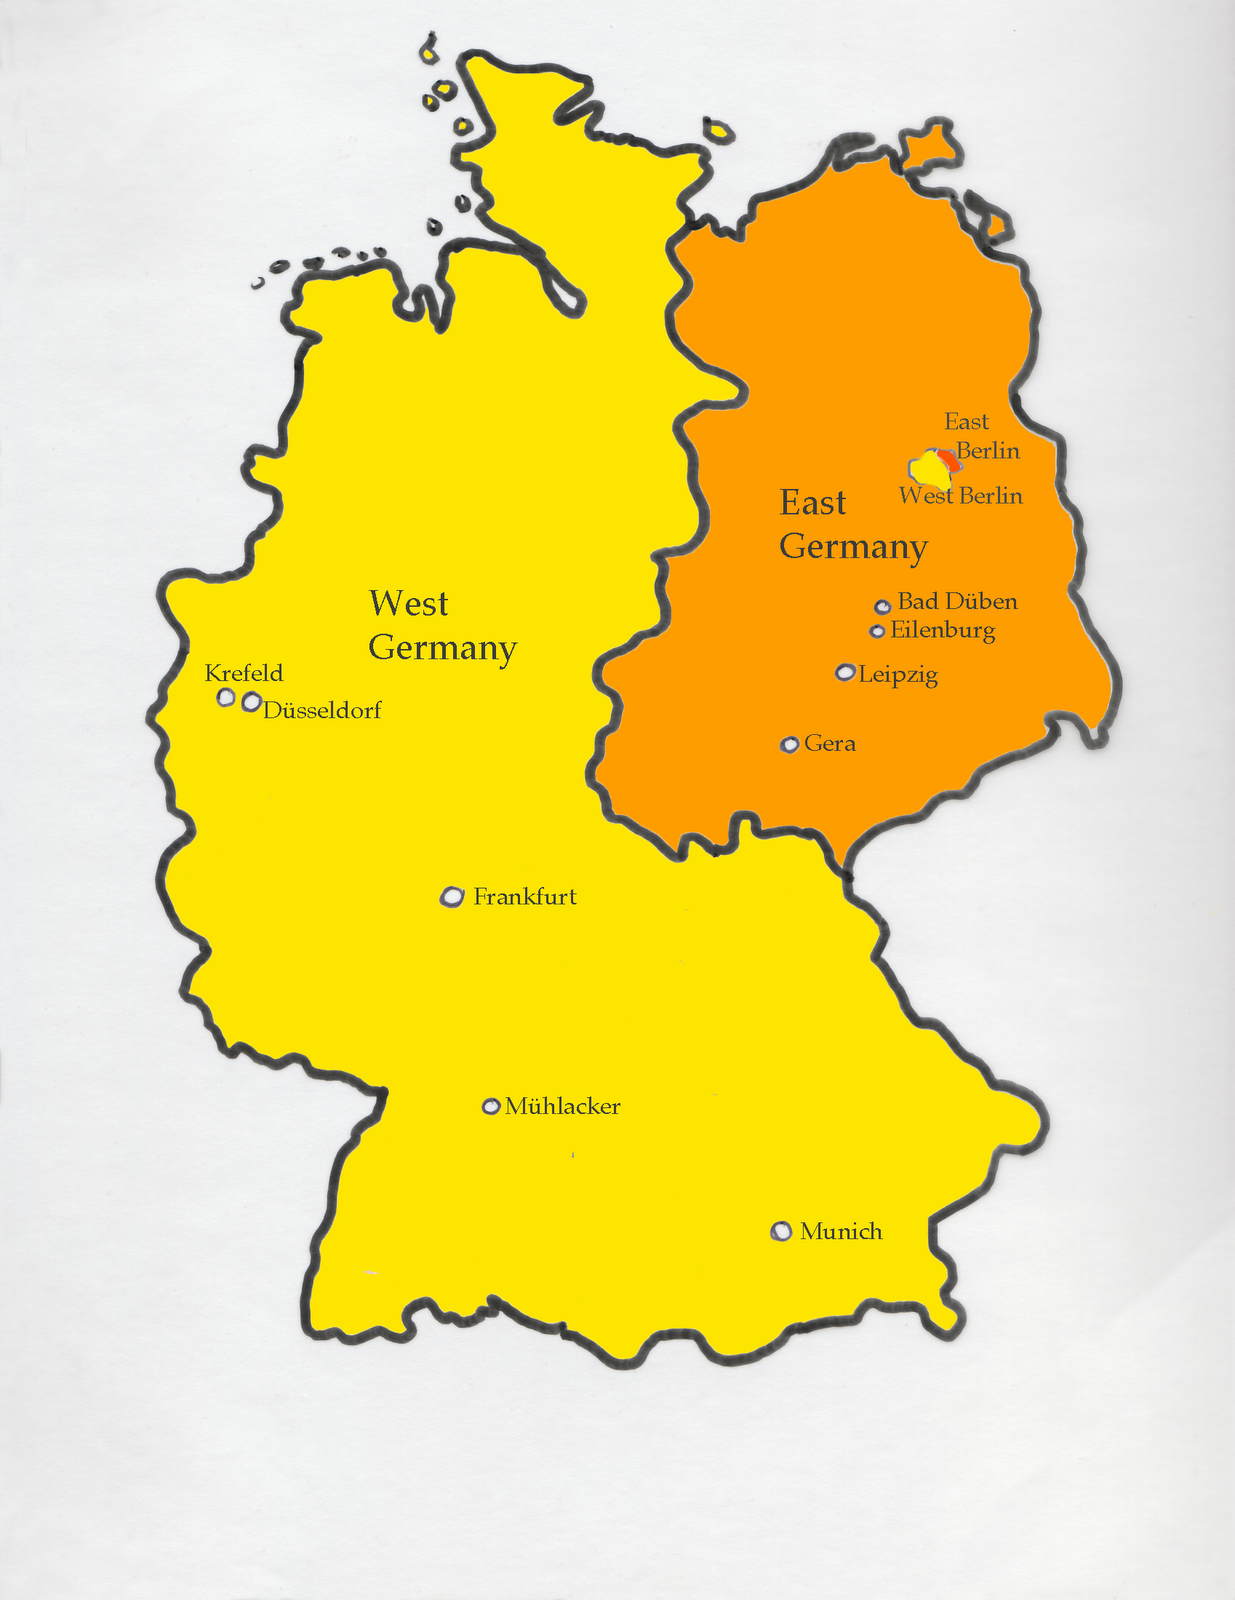 DREAMING IN GERMAN: Map of Divided Germany